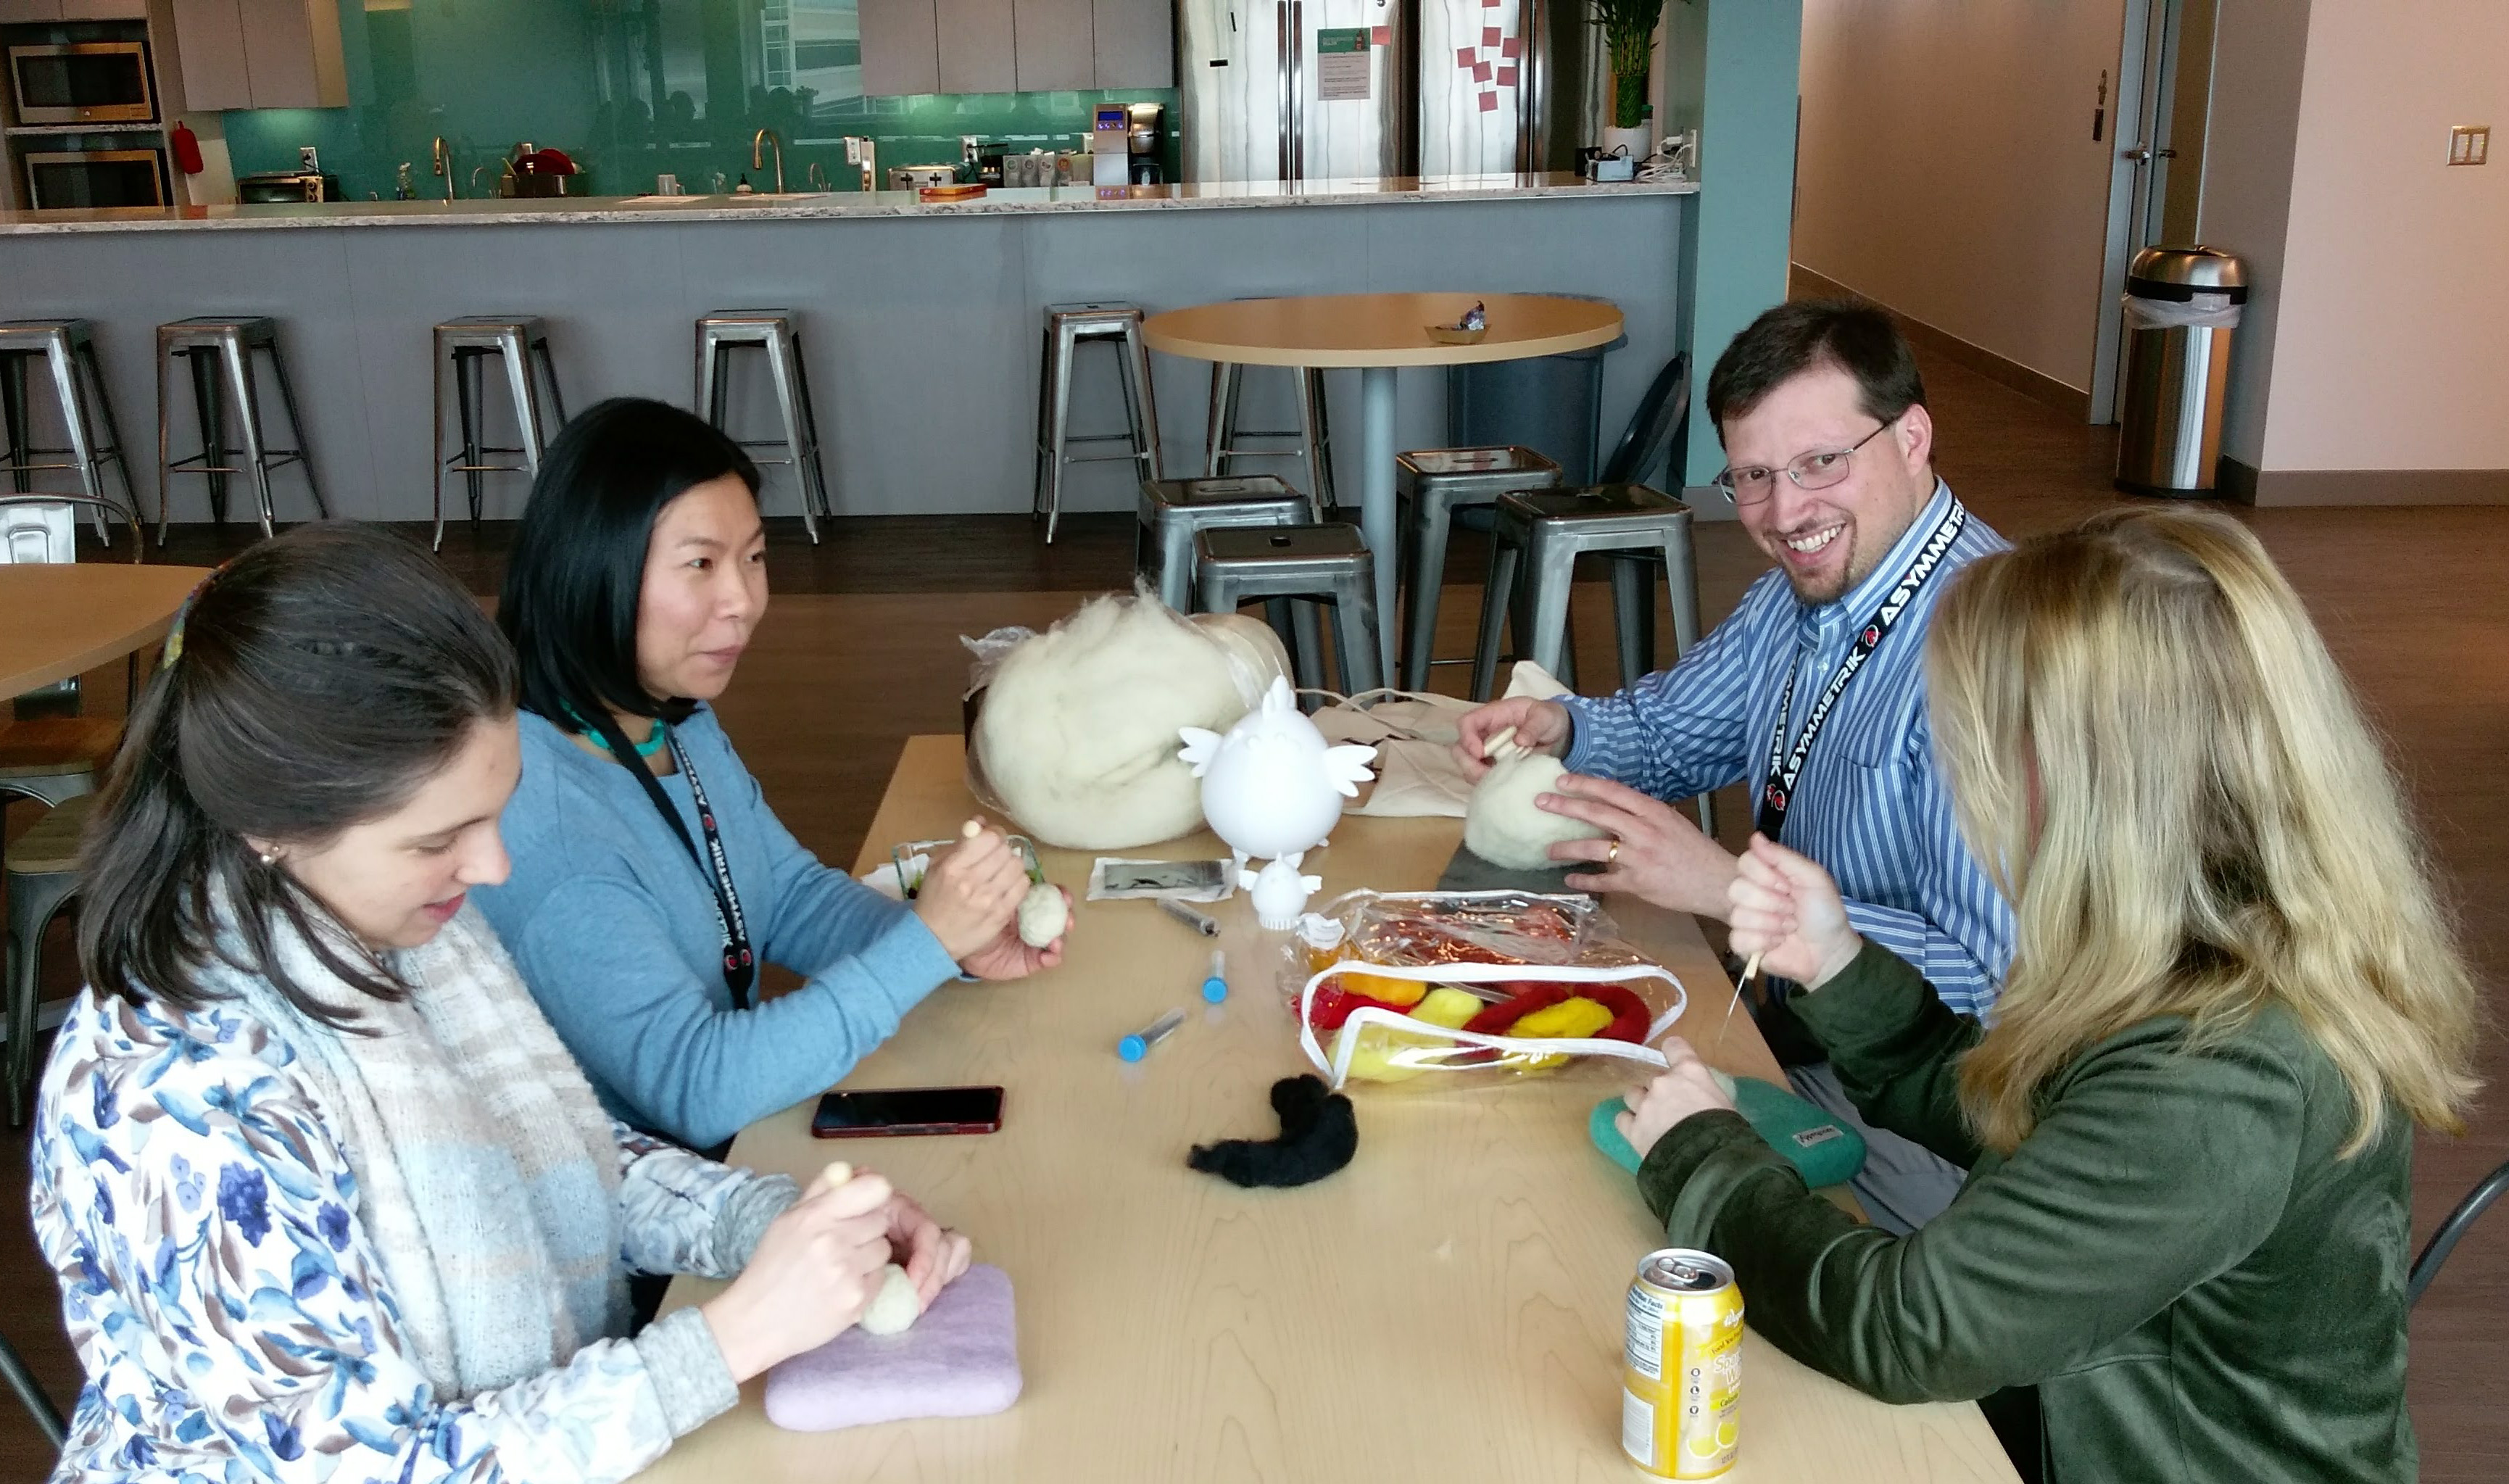 office employees sitting at table needle felting crafting three women one man